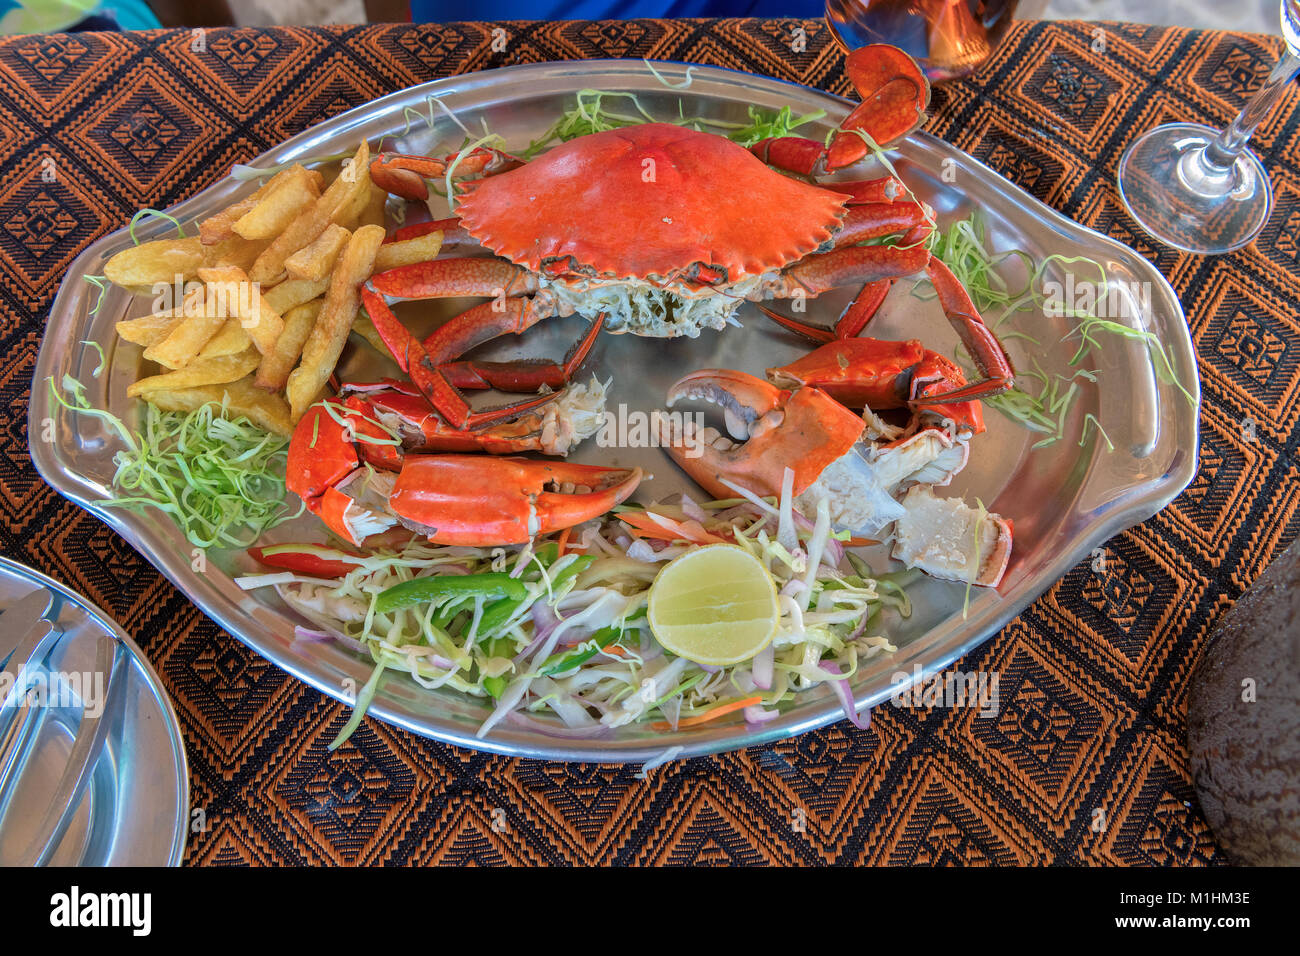 Big crabs and vegetable in beach restaurant, GOA, India. - Stock Image